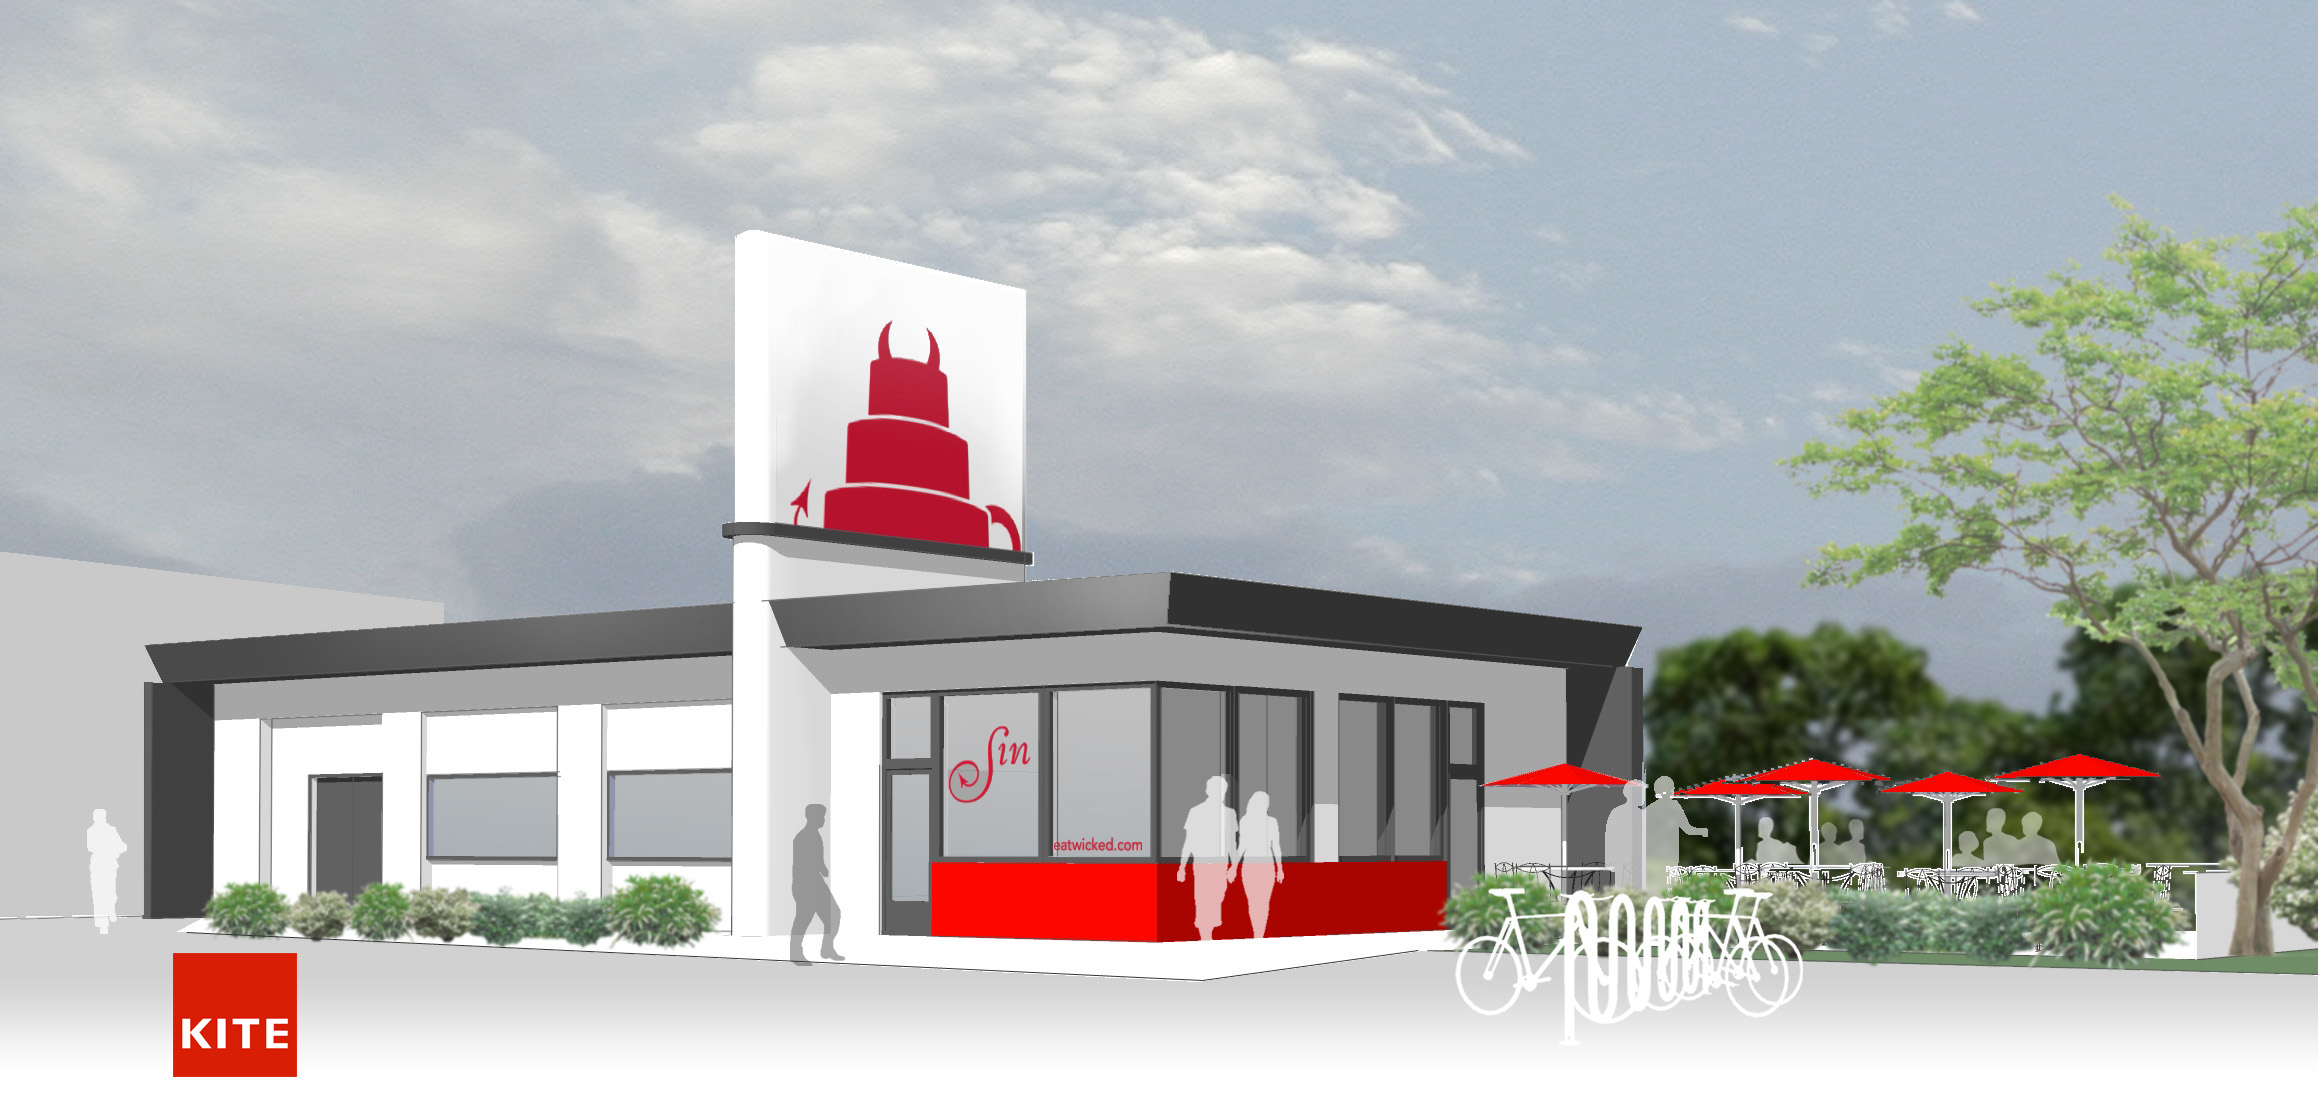 2013 rendering of proposed location for Sin Bakery by design winner Christine West, KITE Architects